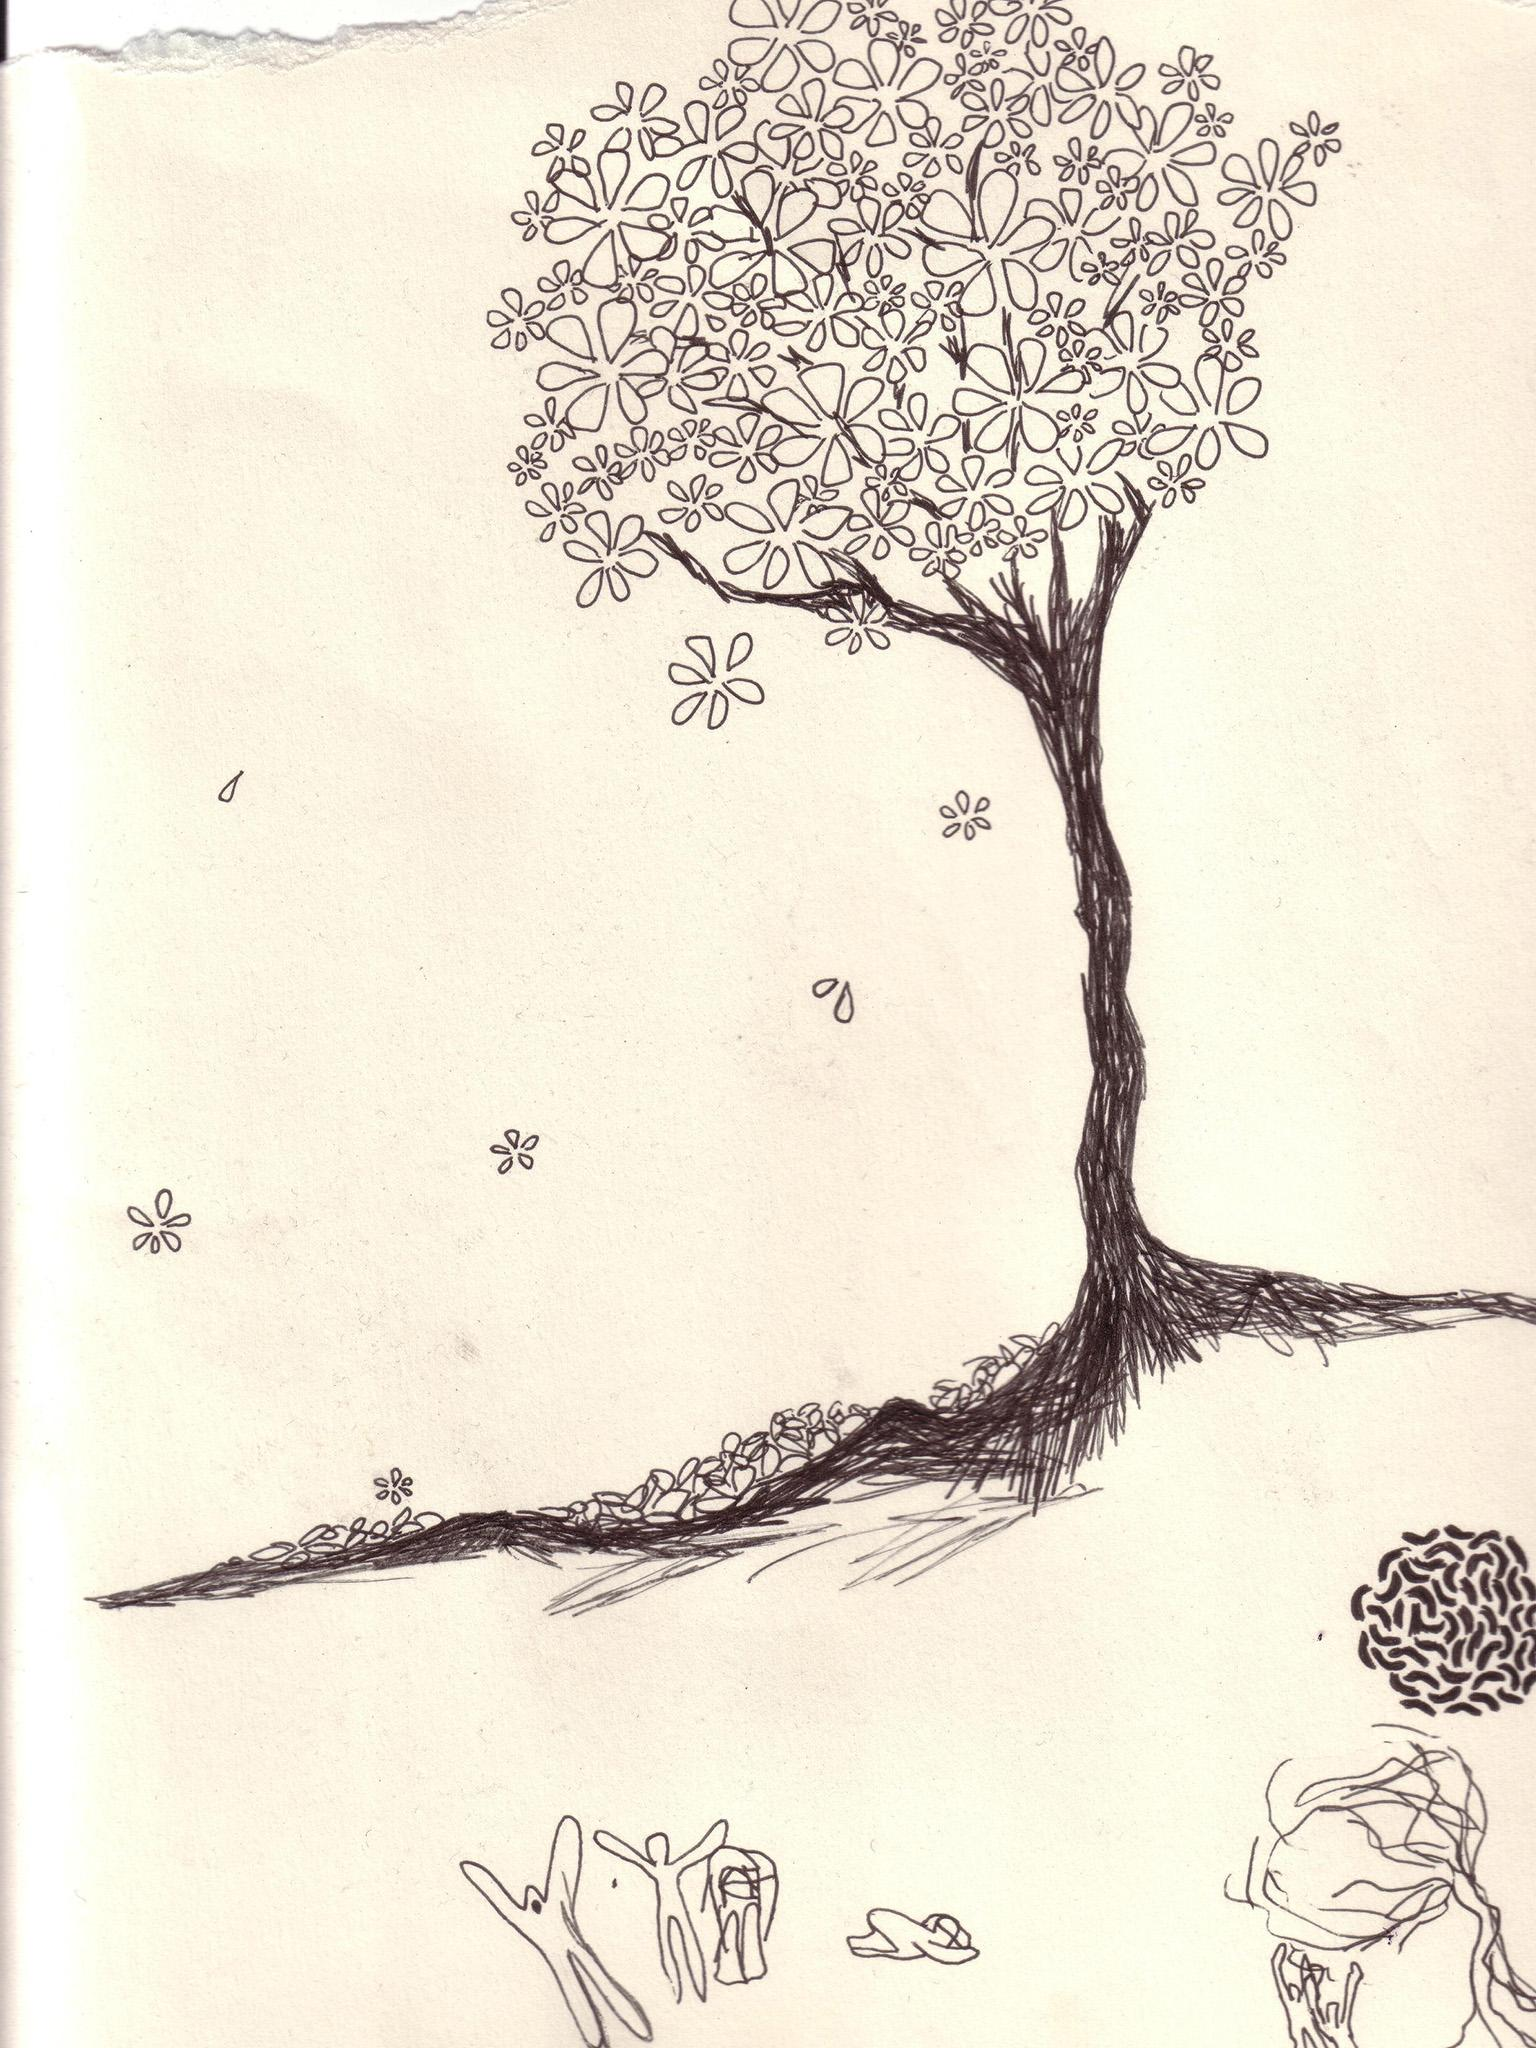 Test Draws On Doodles To Spot Signs Of >> Doodles May Reveal Our Subconscious Thoughts Says Graphologist